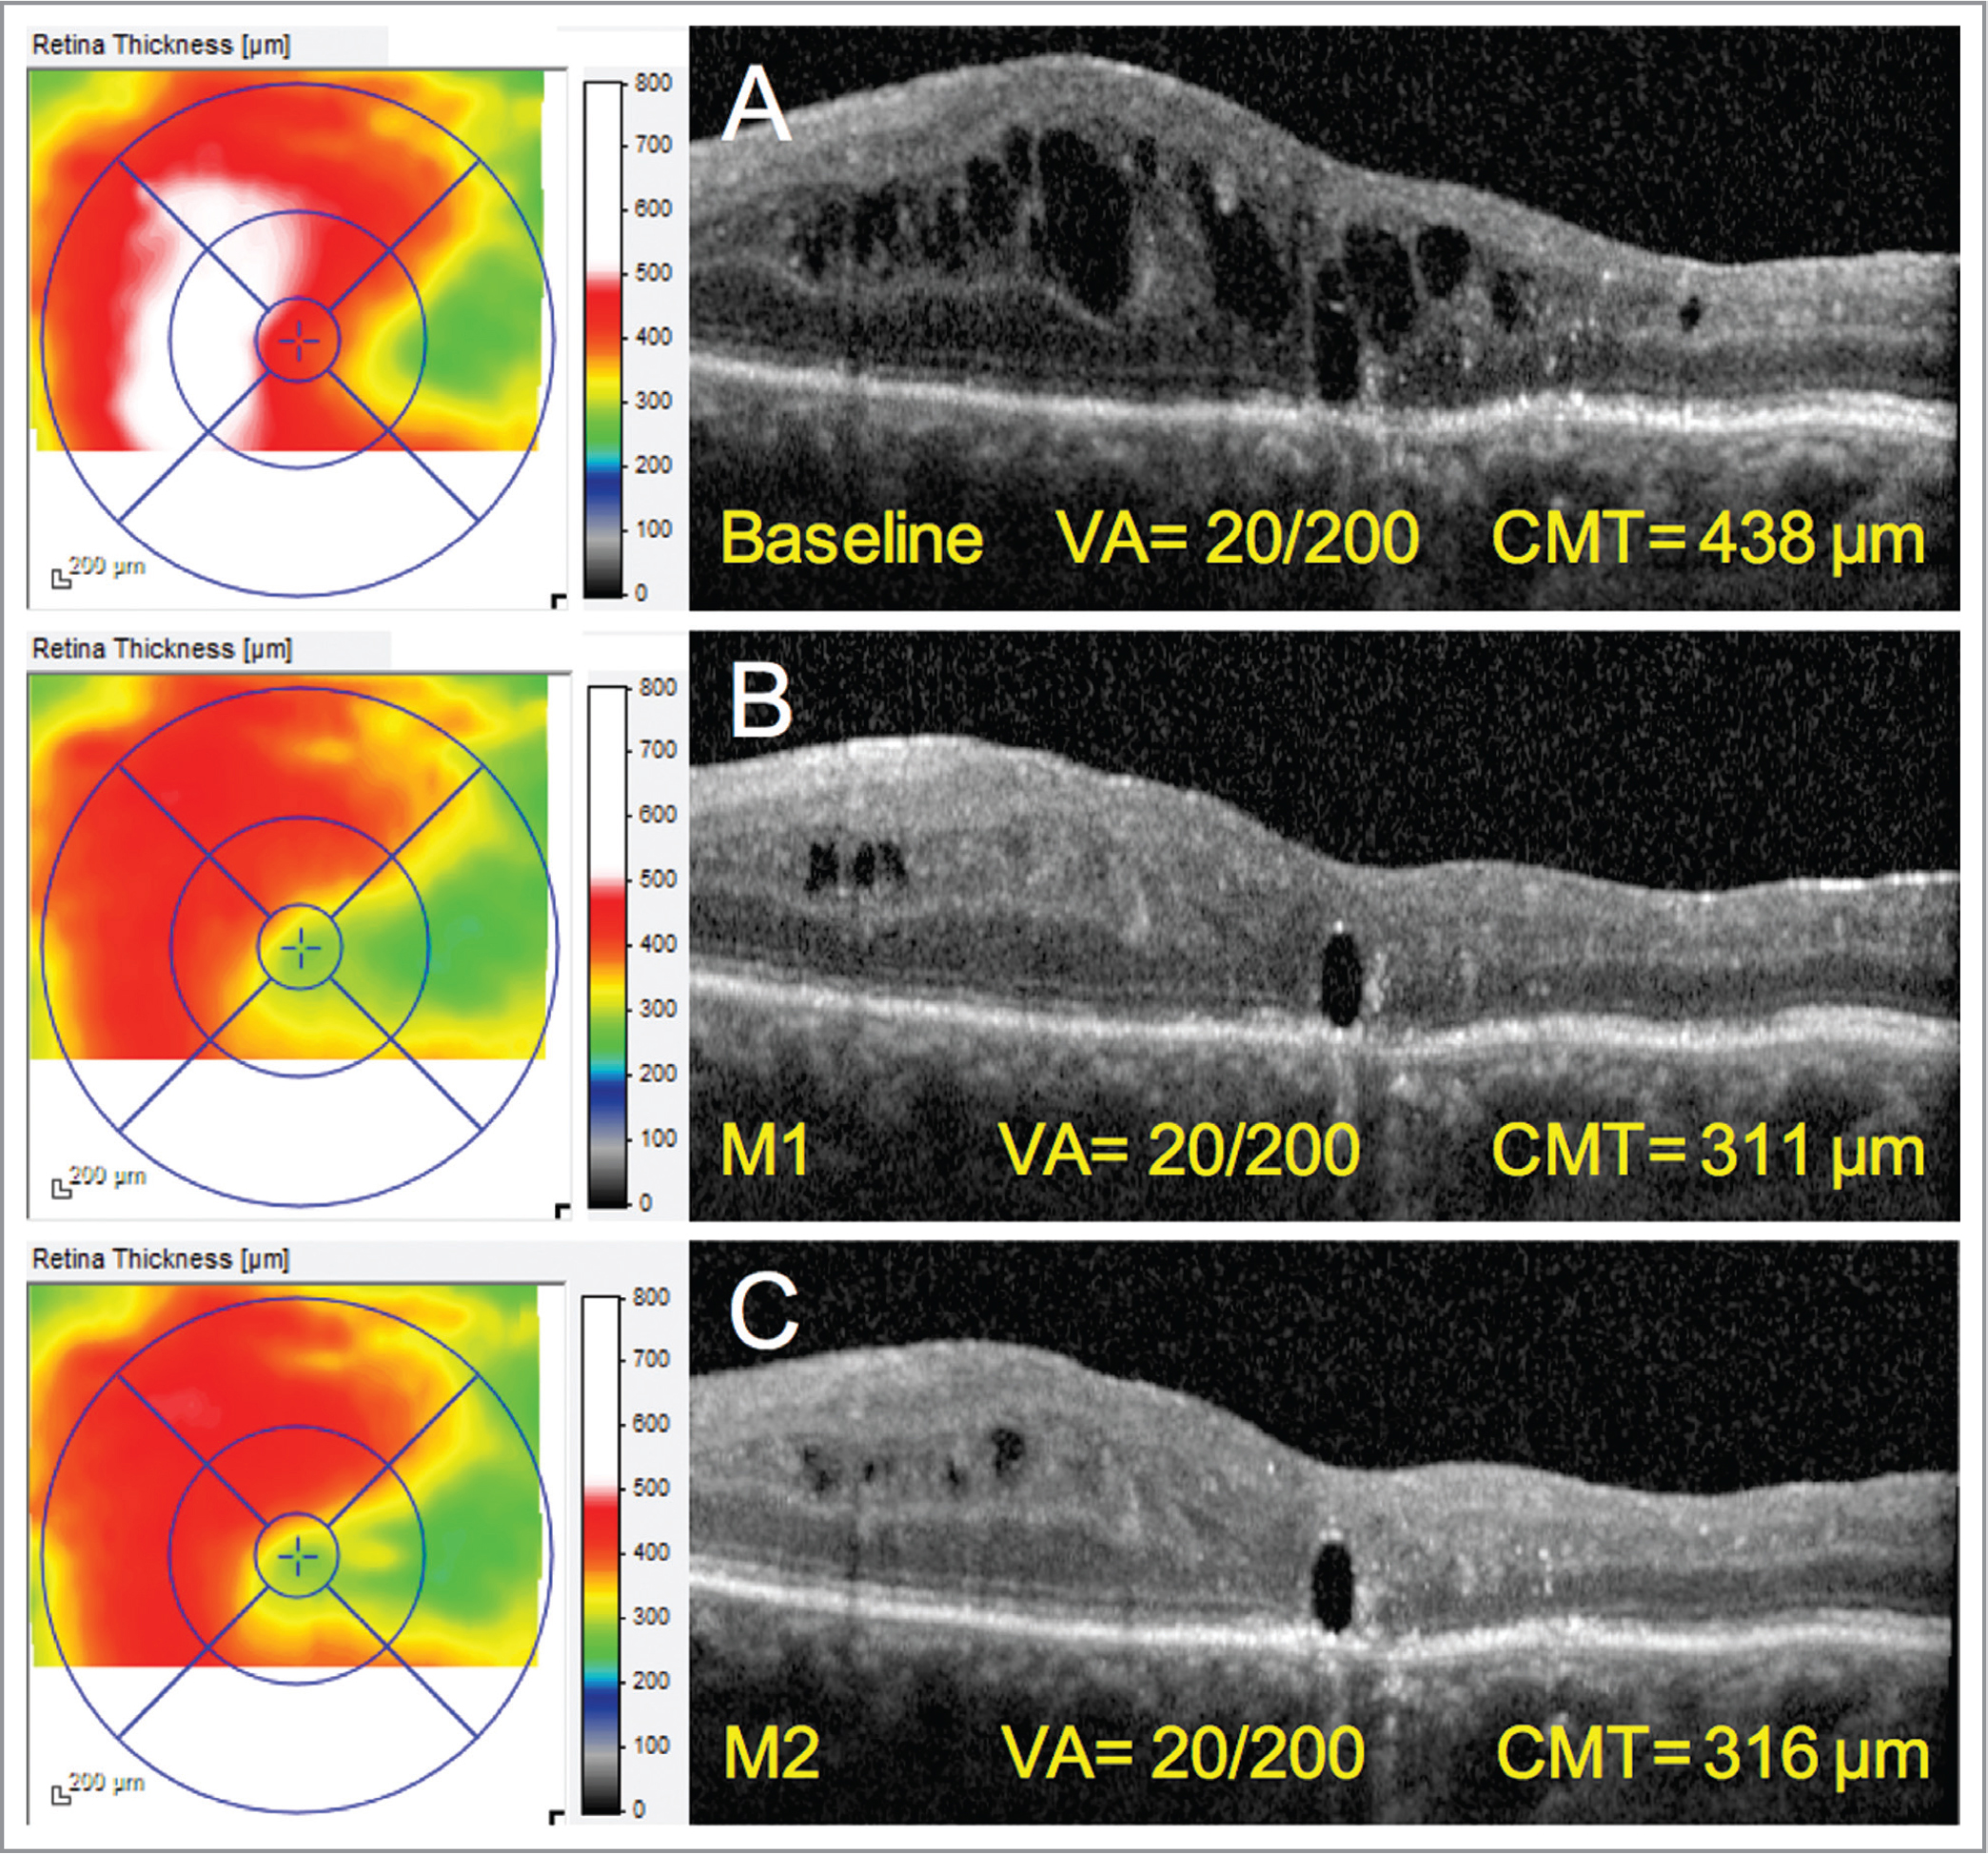 Anatomical improvement in a 69-year-old woman presenting with long-standing macular edema treated by oral eplerenone and topical dexamethasone 2 years after pars plana vitrectomy and silicone-oil tamponade for rhegmatogenous retinal detachment with proliferative vitreoretinopathy. (A) At presentation. (B–C) Regression of cystoid edema cavities and decrease in central macular thickness after 1 month and 2 months since initiation of treatment with oral epleronone (50 mg/day) and topical dexamethasone (four times/day). M = month; VA = visual acuity; CMT = central macular thickness.